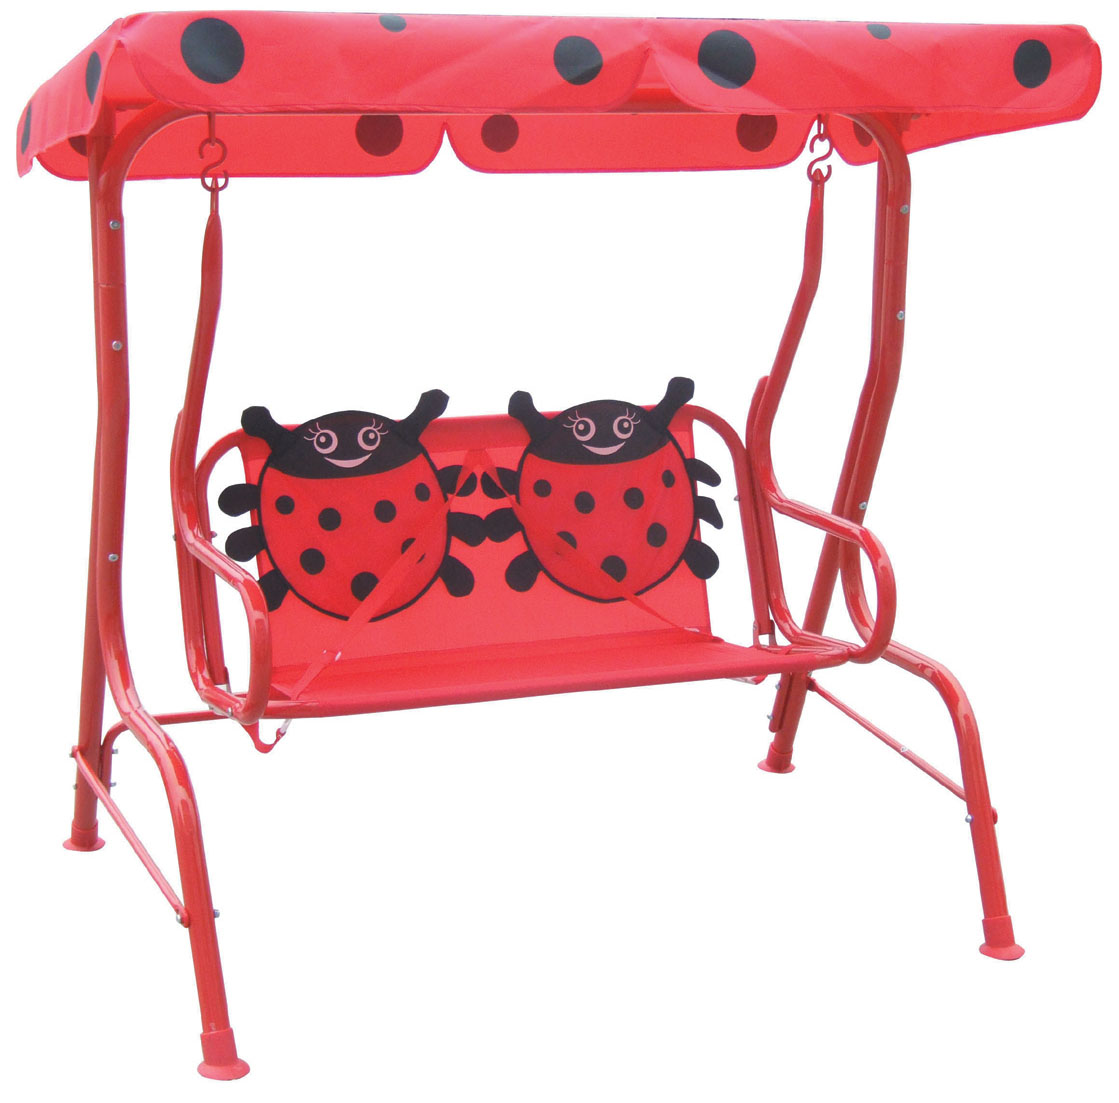 Far East Brokers Leisure Ways Kidsu0027 Swing Chair  sc 1 st  Consumer Product Safety Commission & Far East Brokers Recalls Ladybug-themed Kidsu0027 Outdoor Furniture Due ...